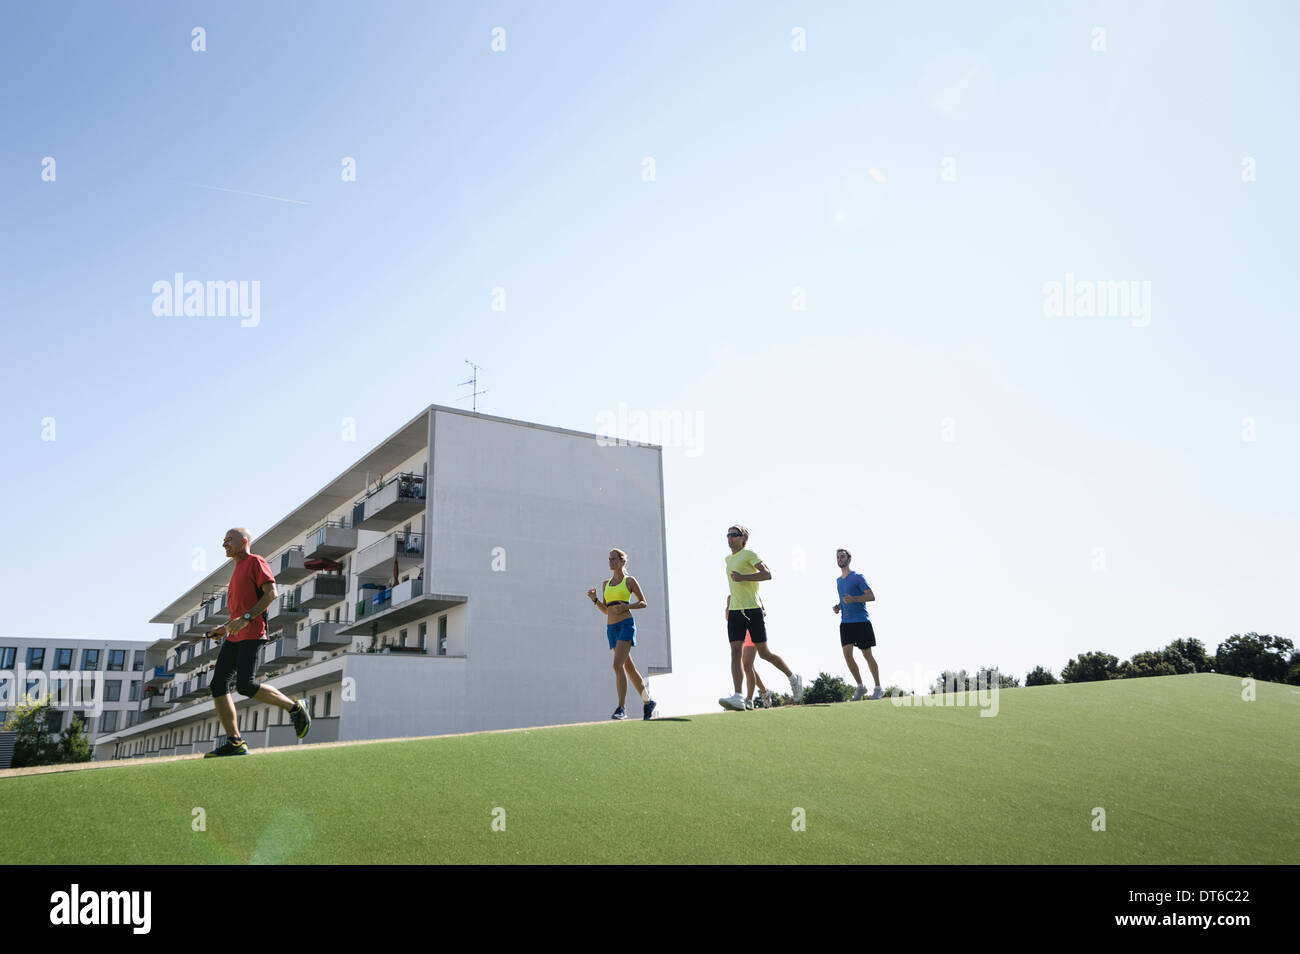 Mature trainer running with small group of adults - Stock Image